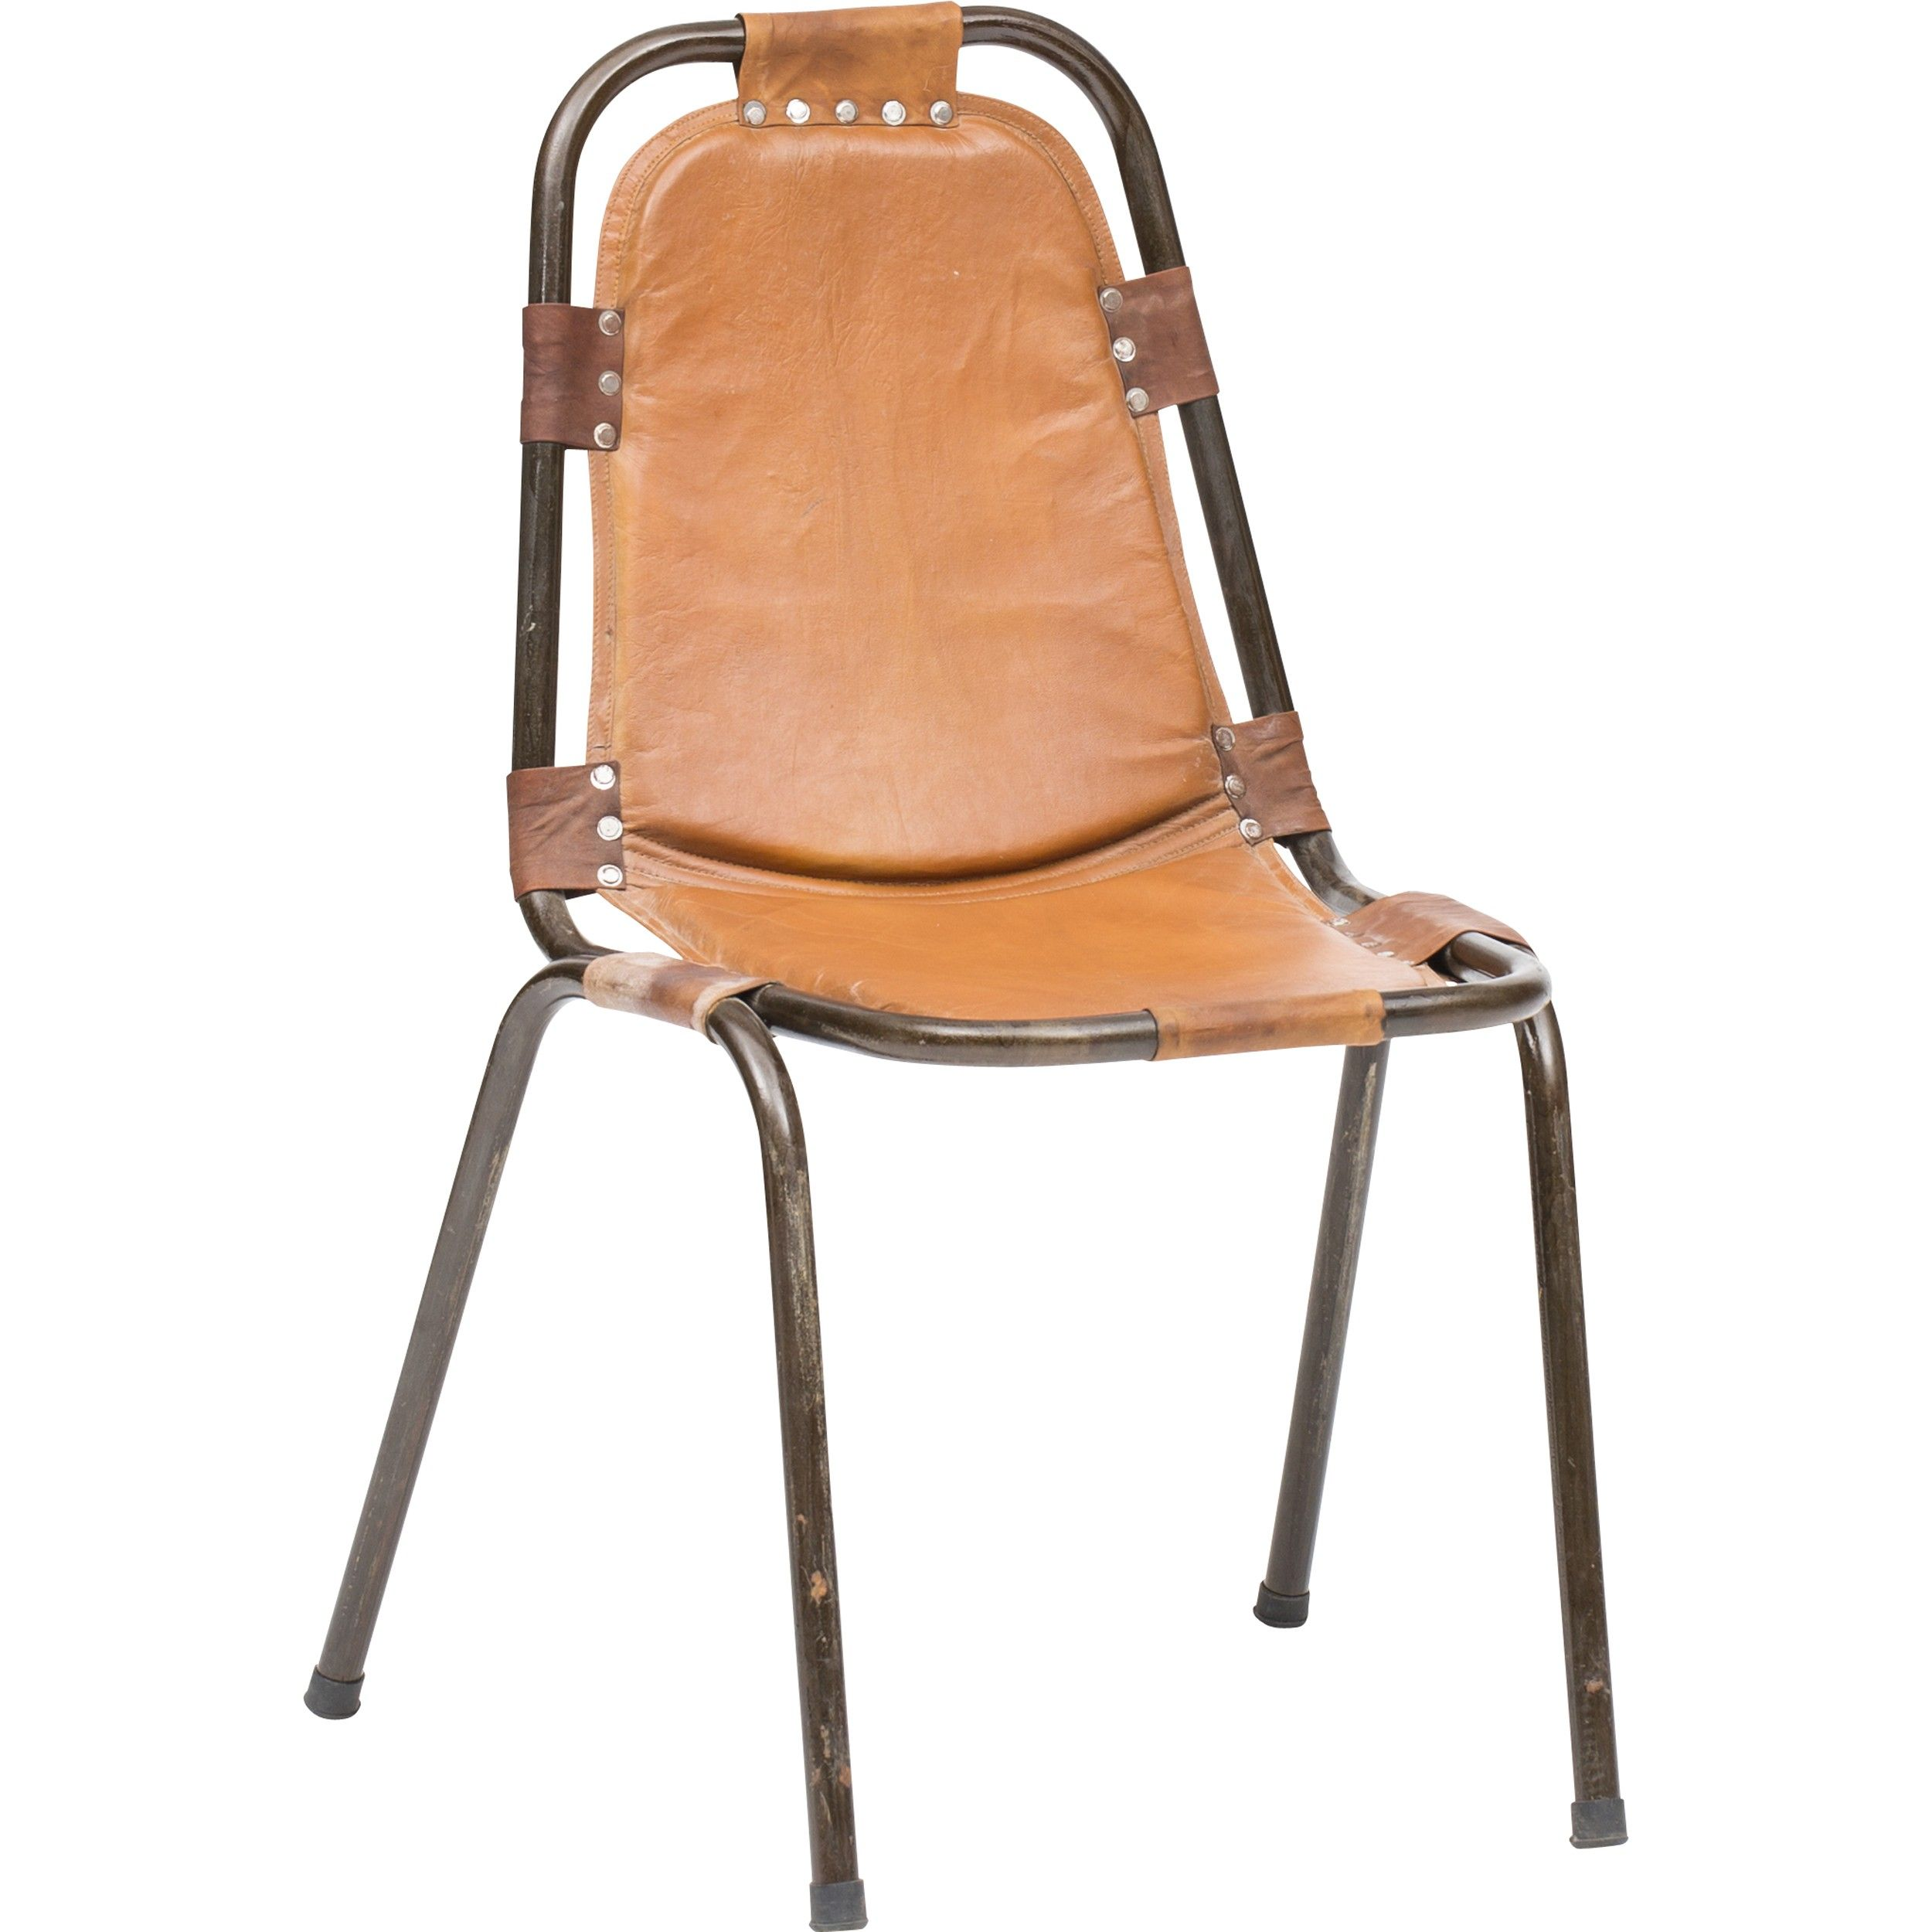 """Leather Strap Chair $198 00 """"Castle Heights"""" Pilot"""